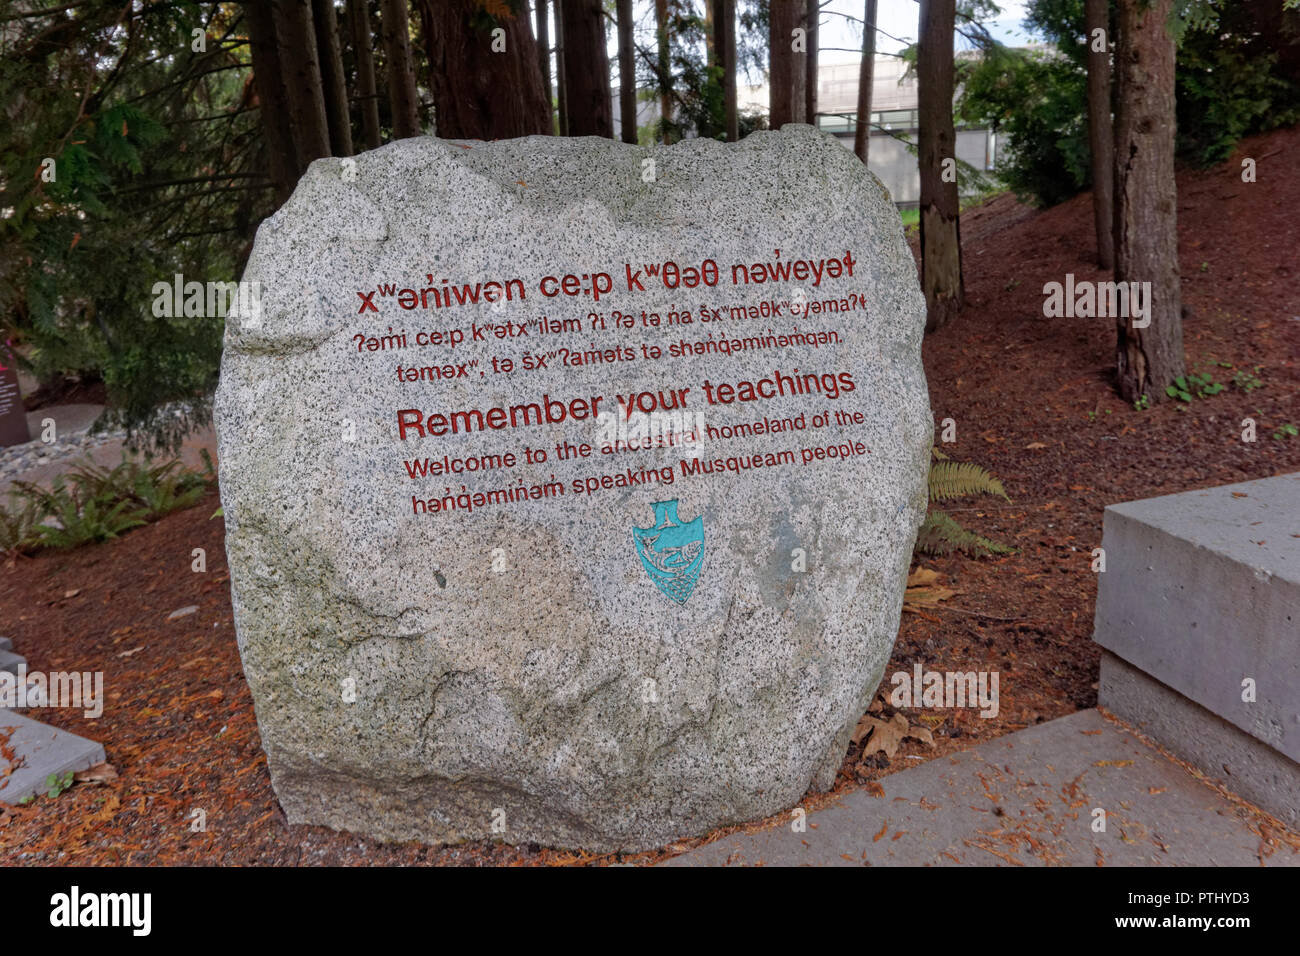 Musqueam people welcoming message carved on a boulder at the entrance to the UBC Museum of Anthropology, University of British Columbia, Vancouver, BC - Stock Image